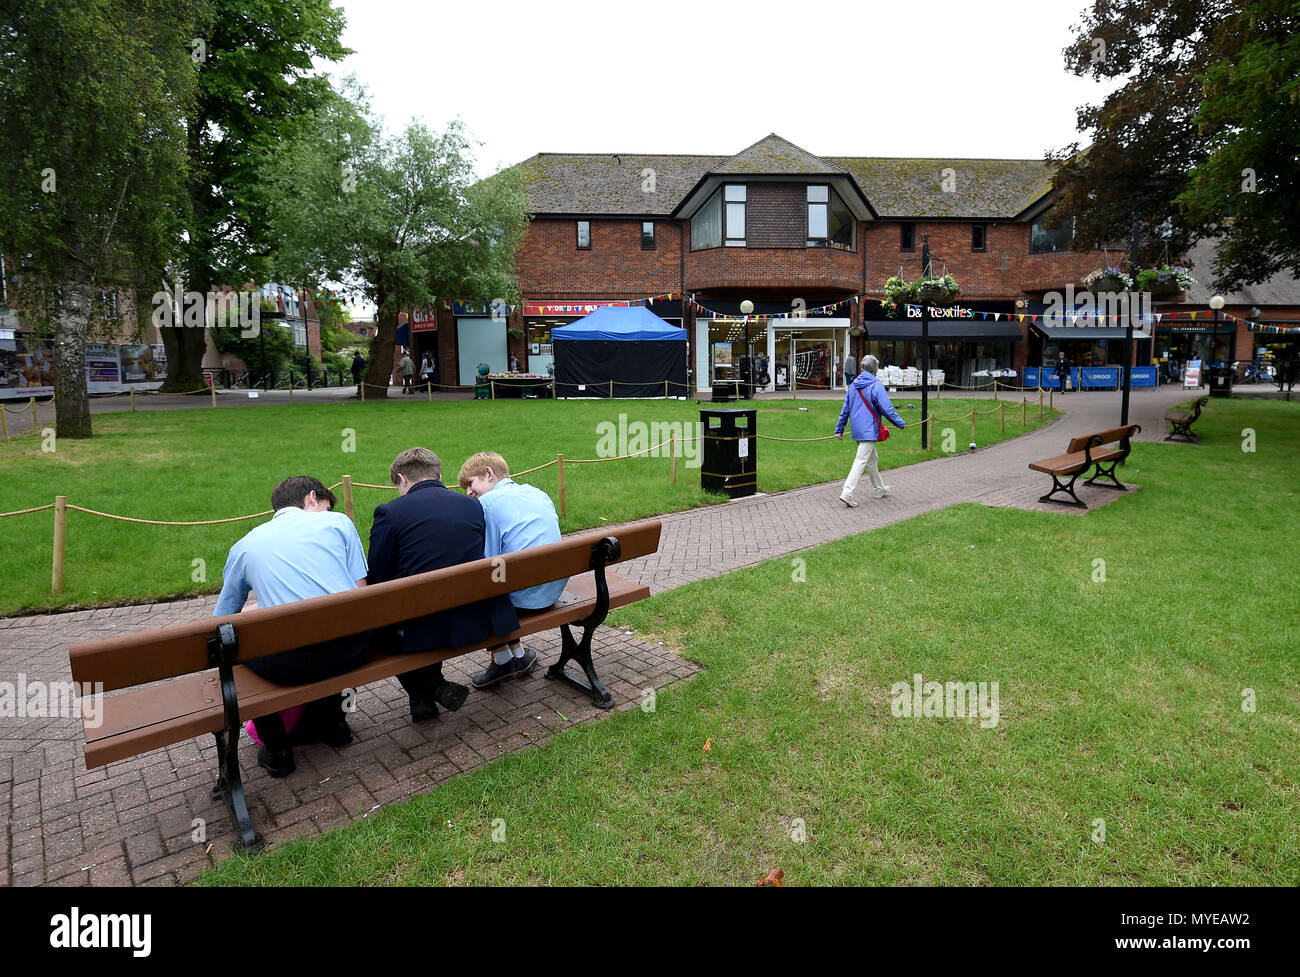 Salisbury, Wiltshire, UK. 7th June, 2018. General views of The Maltings shopping area, 2 weeks after reopening to the public after the poisoning of the poisoning of Sergei and Yulia Skripal, Salisbury, Wiltshire Credit: Finnbarr Webster/Alamy Live News - Stock Image